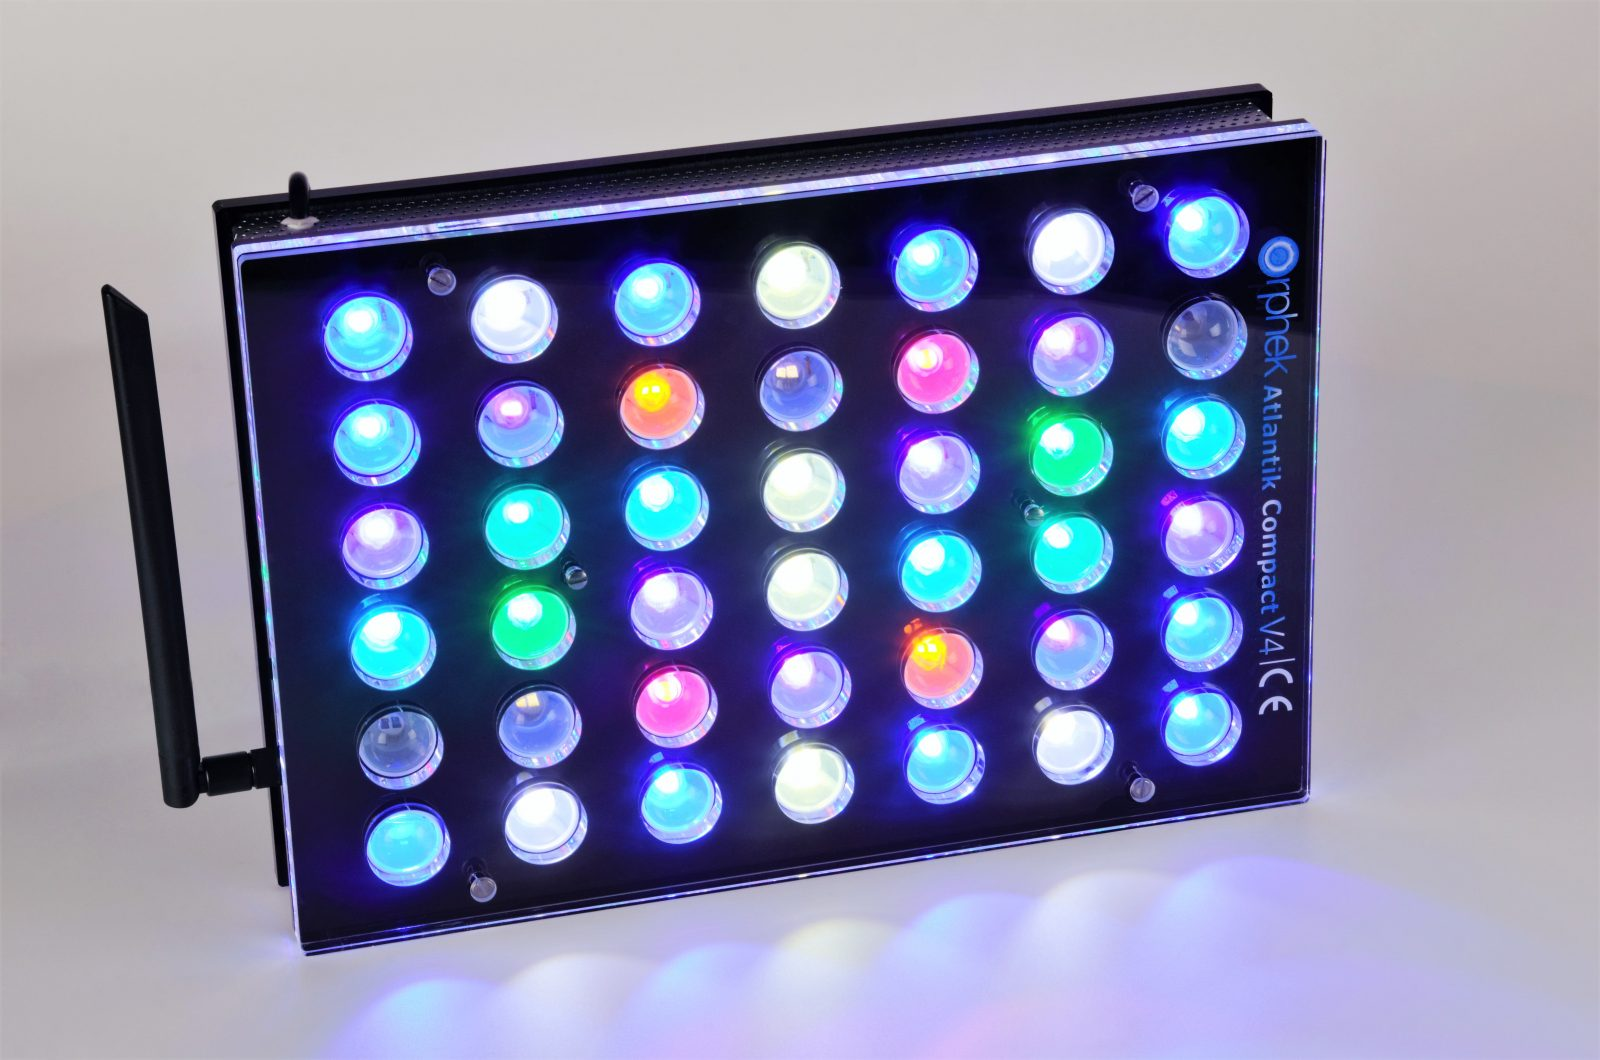 Orphek-Aquarium-LED-Lighting-Atlantik -Compact-V4-light -on通道1 + 2 + 3 + 4